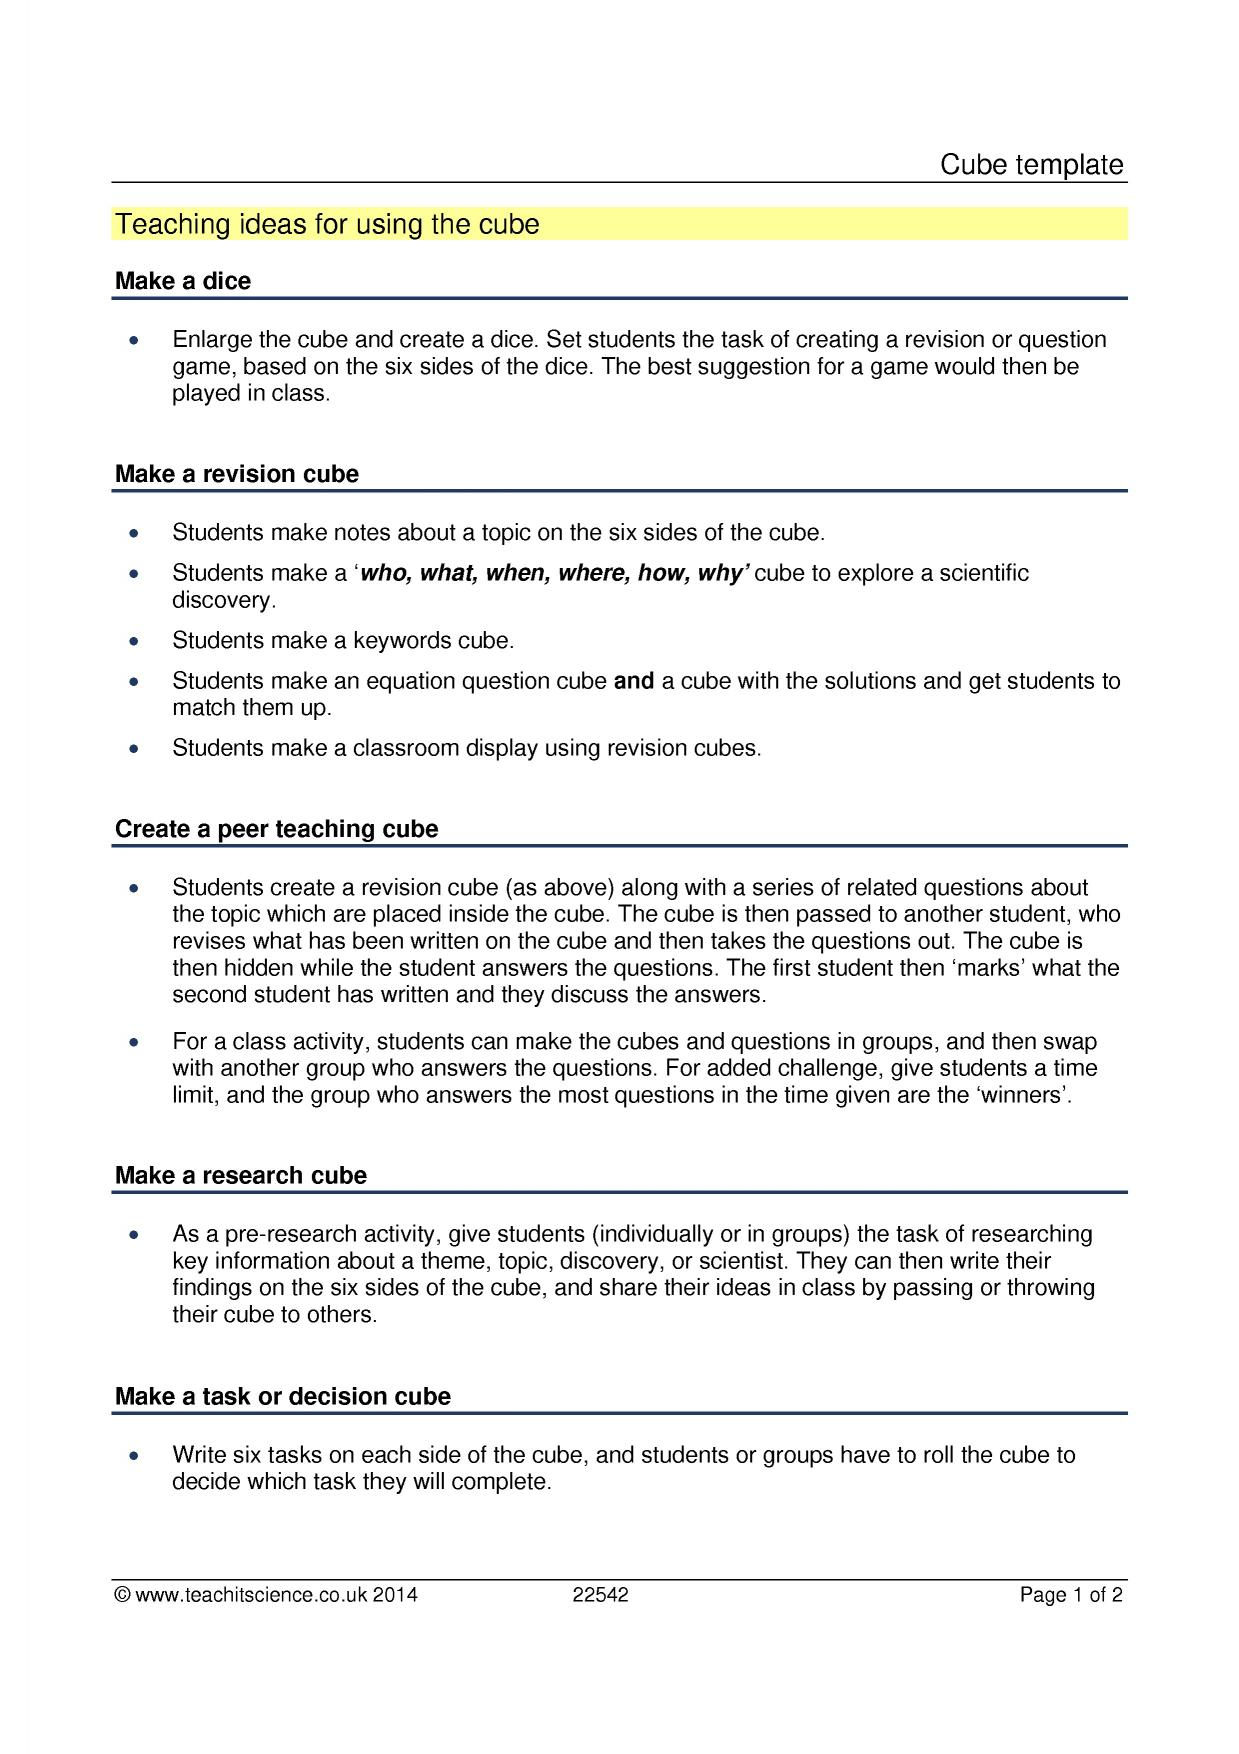 005 Essay Writing Jobs Online For Freelance Writers Essays